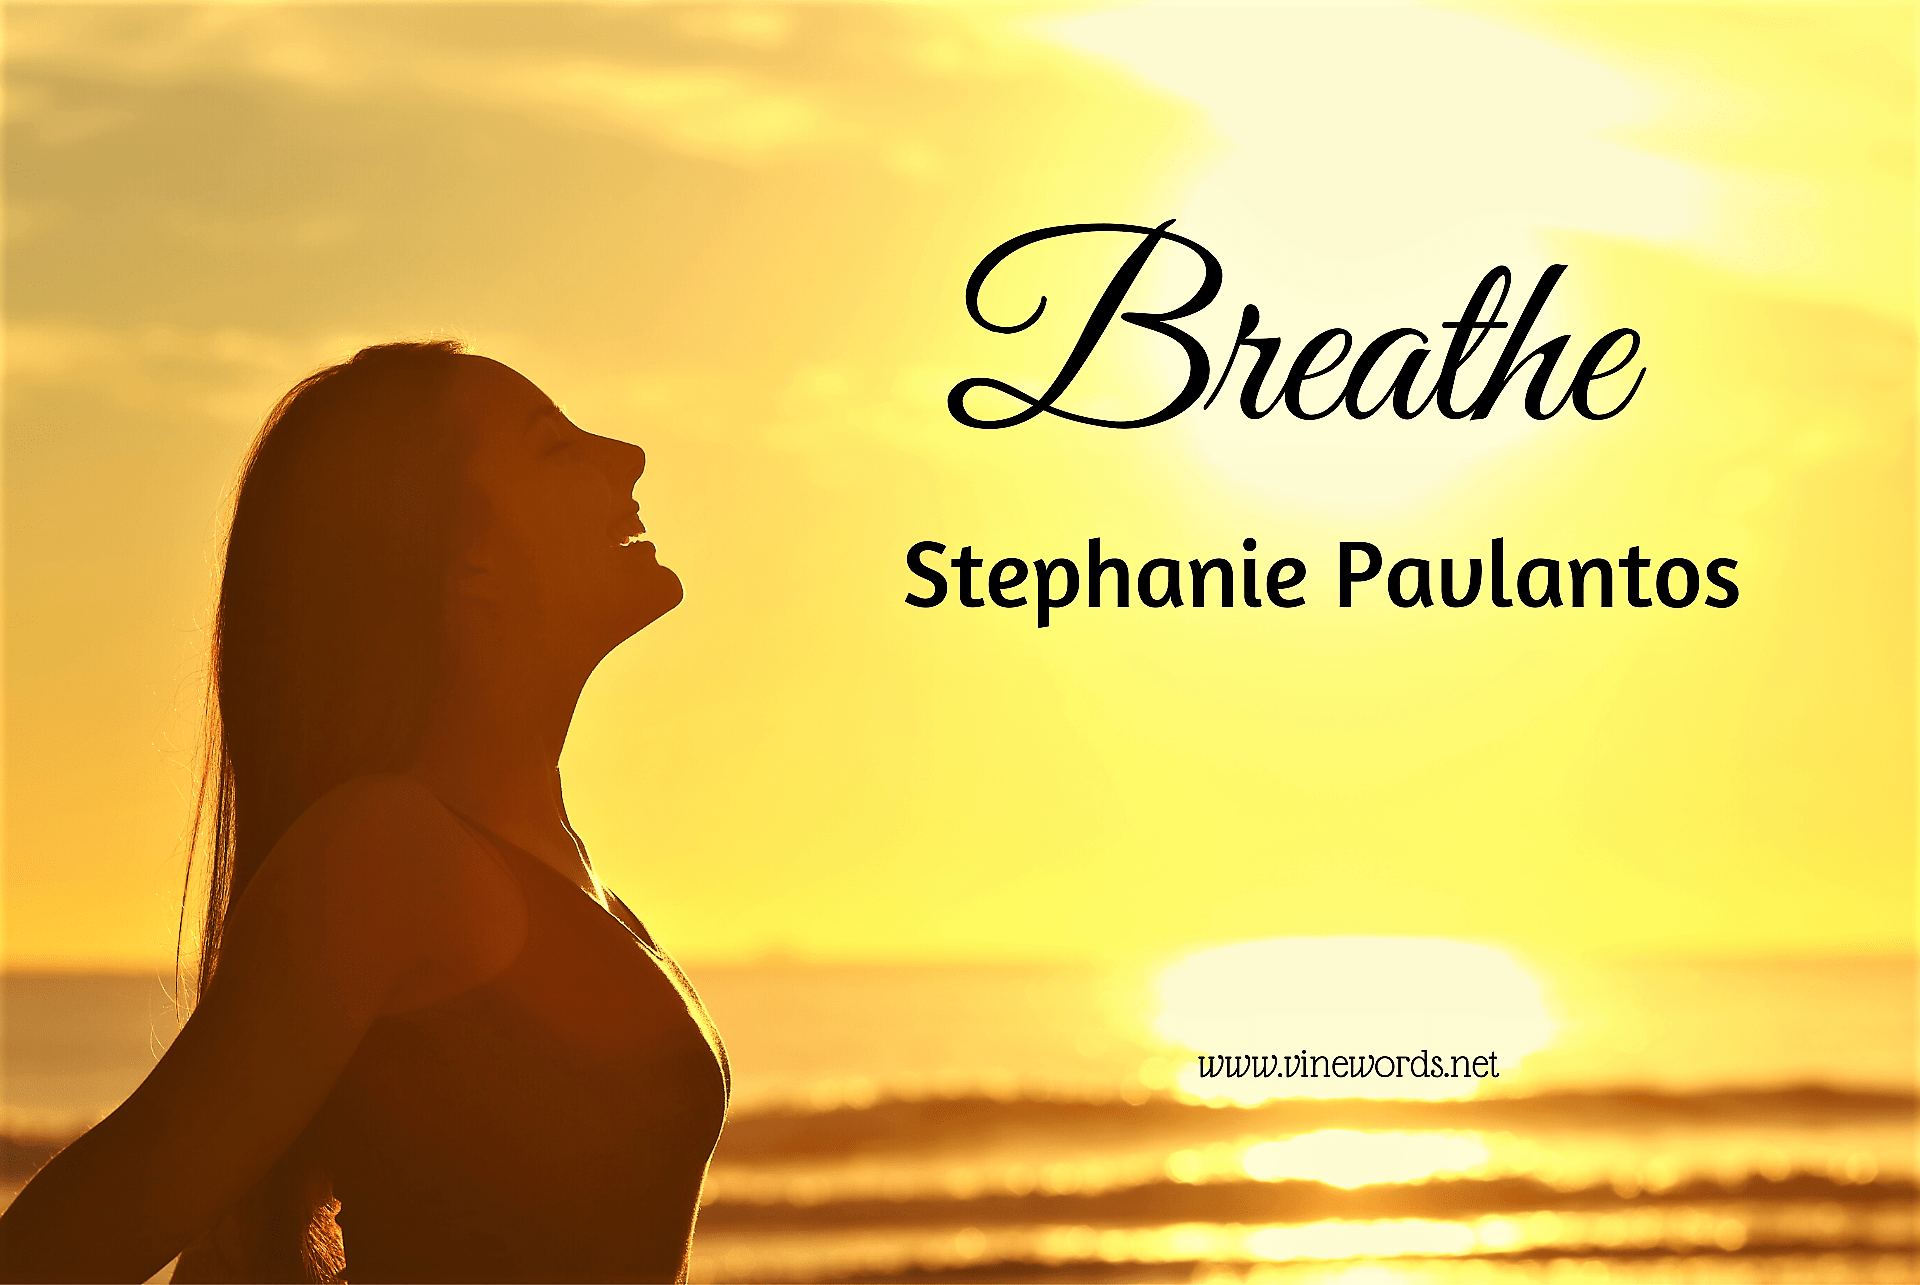 Stephanie Pavlantos: Breathe